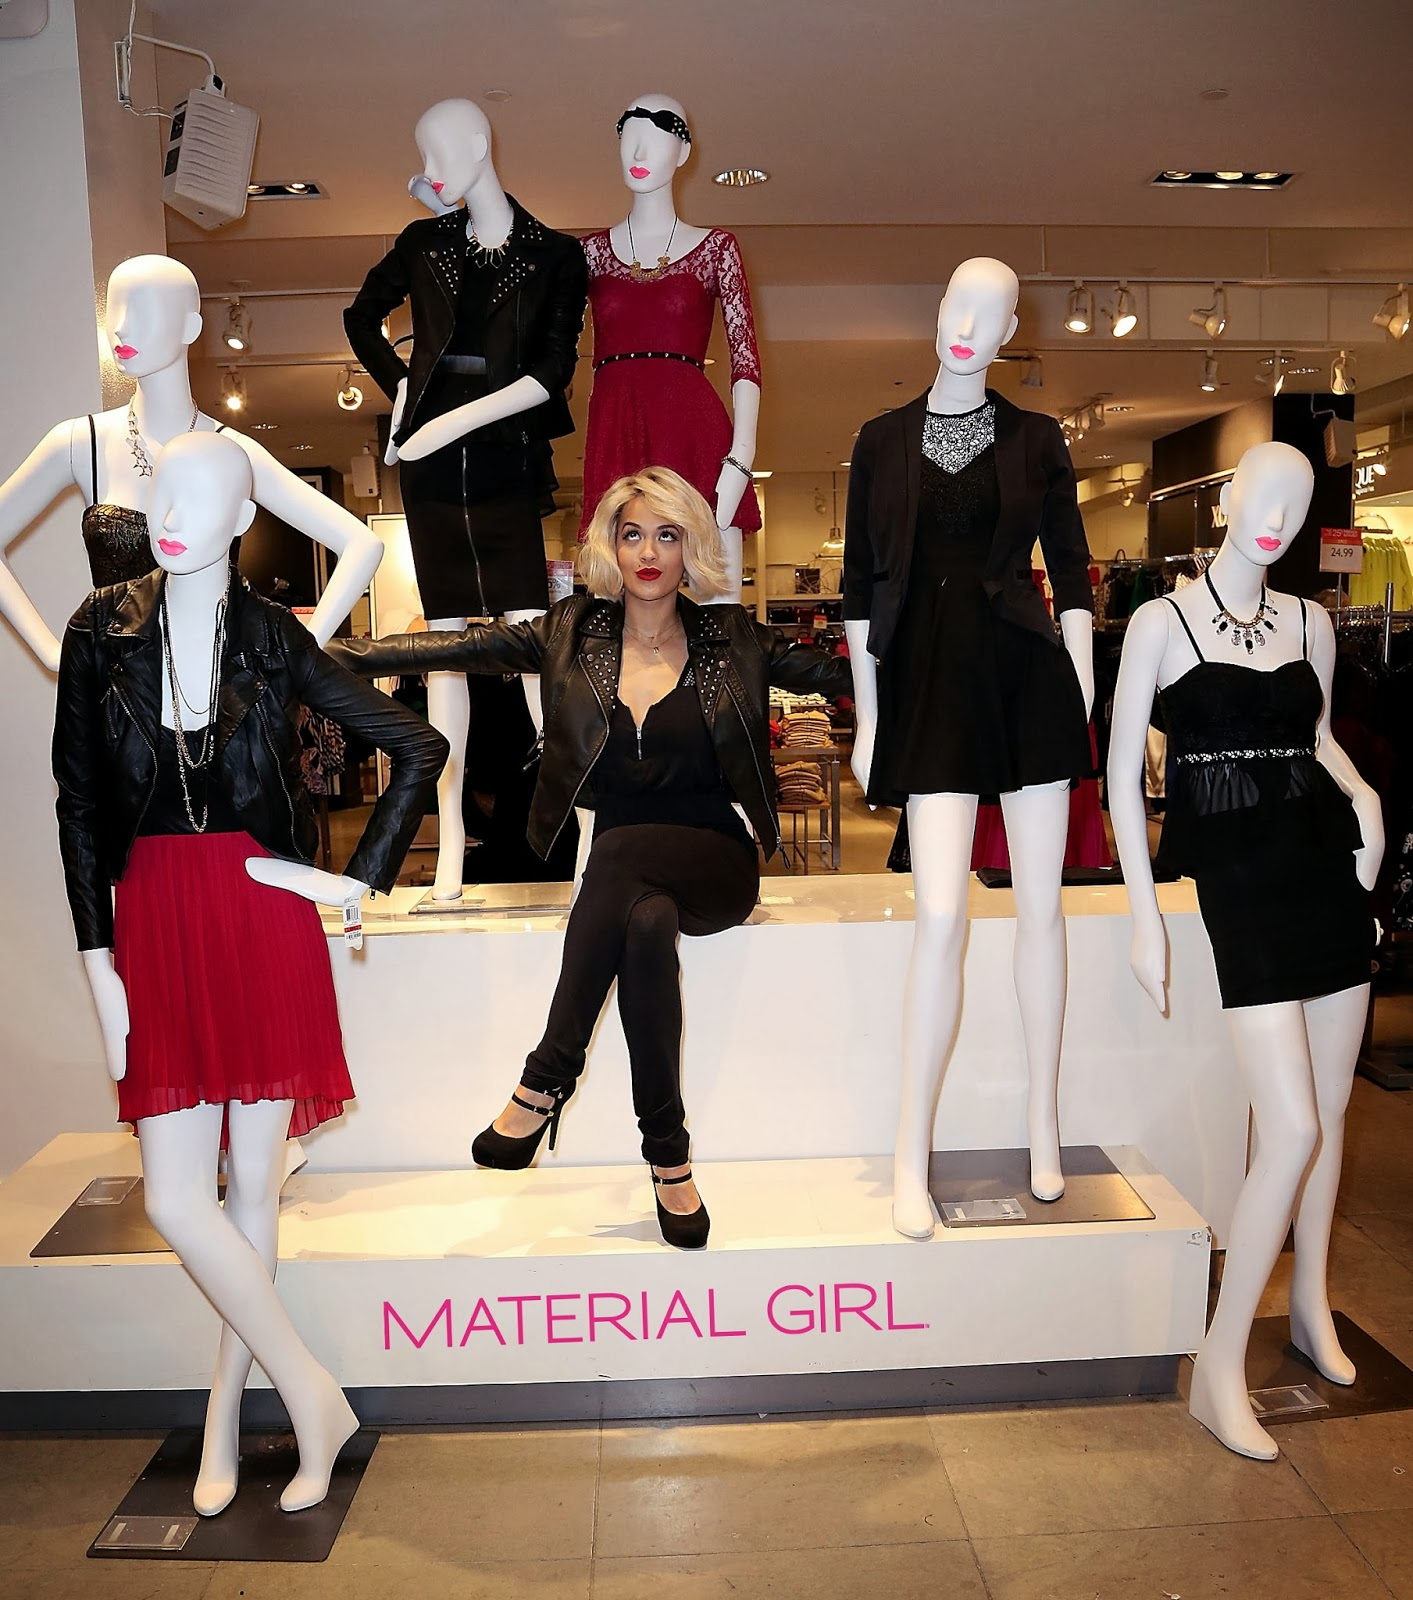 Rita Ora Celebrates Material Girls Holiday Collection At